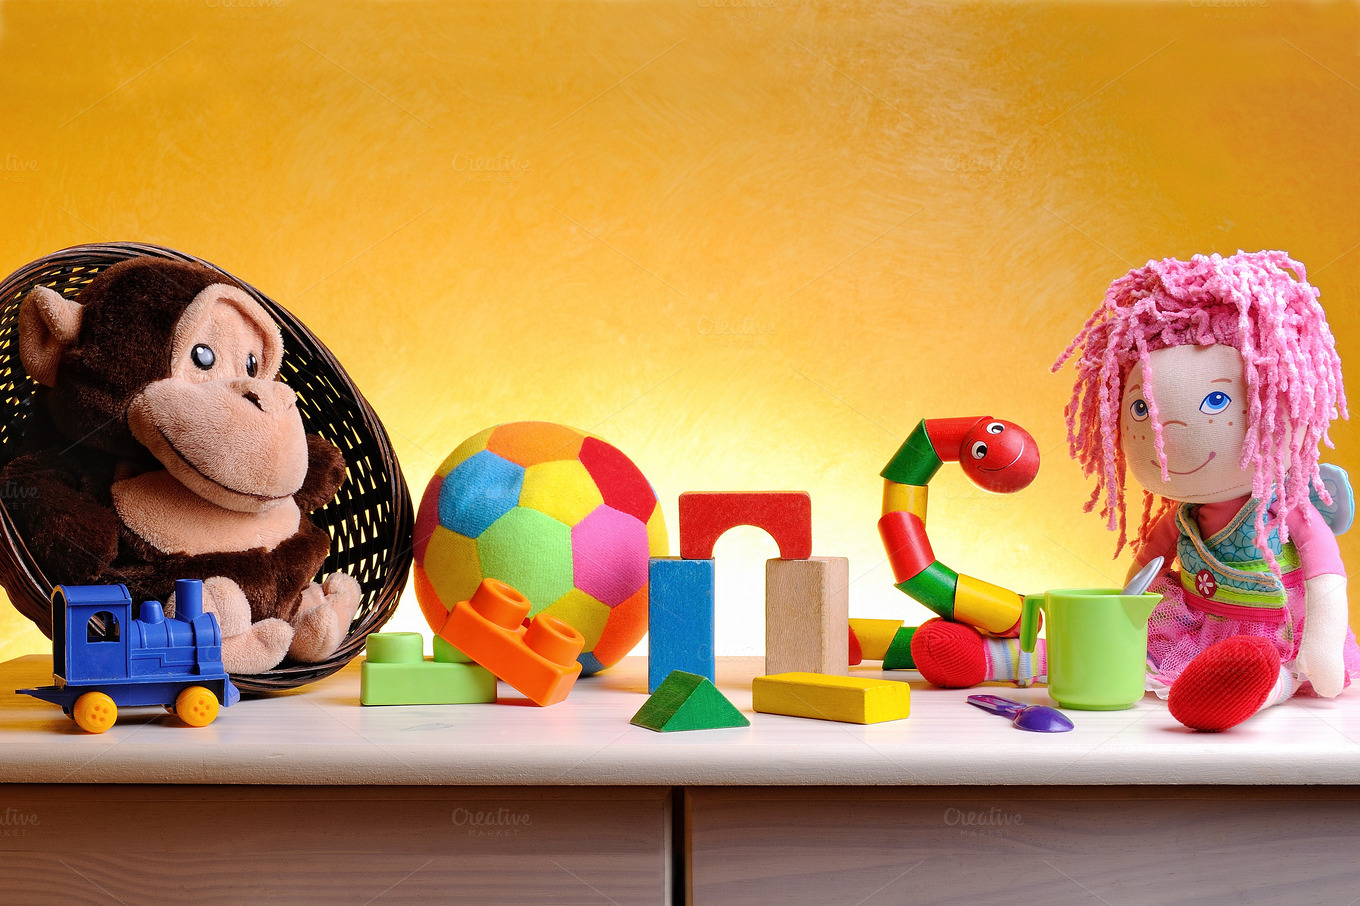 Table Top Toys For Preschoolers : Leisure toys for children on a table education photos